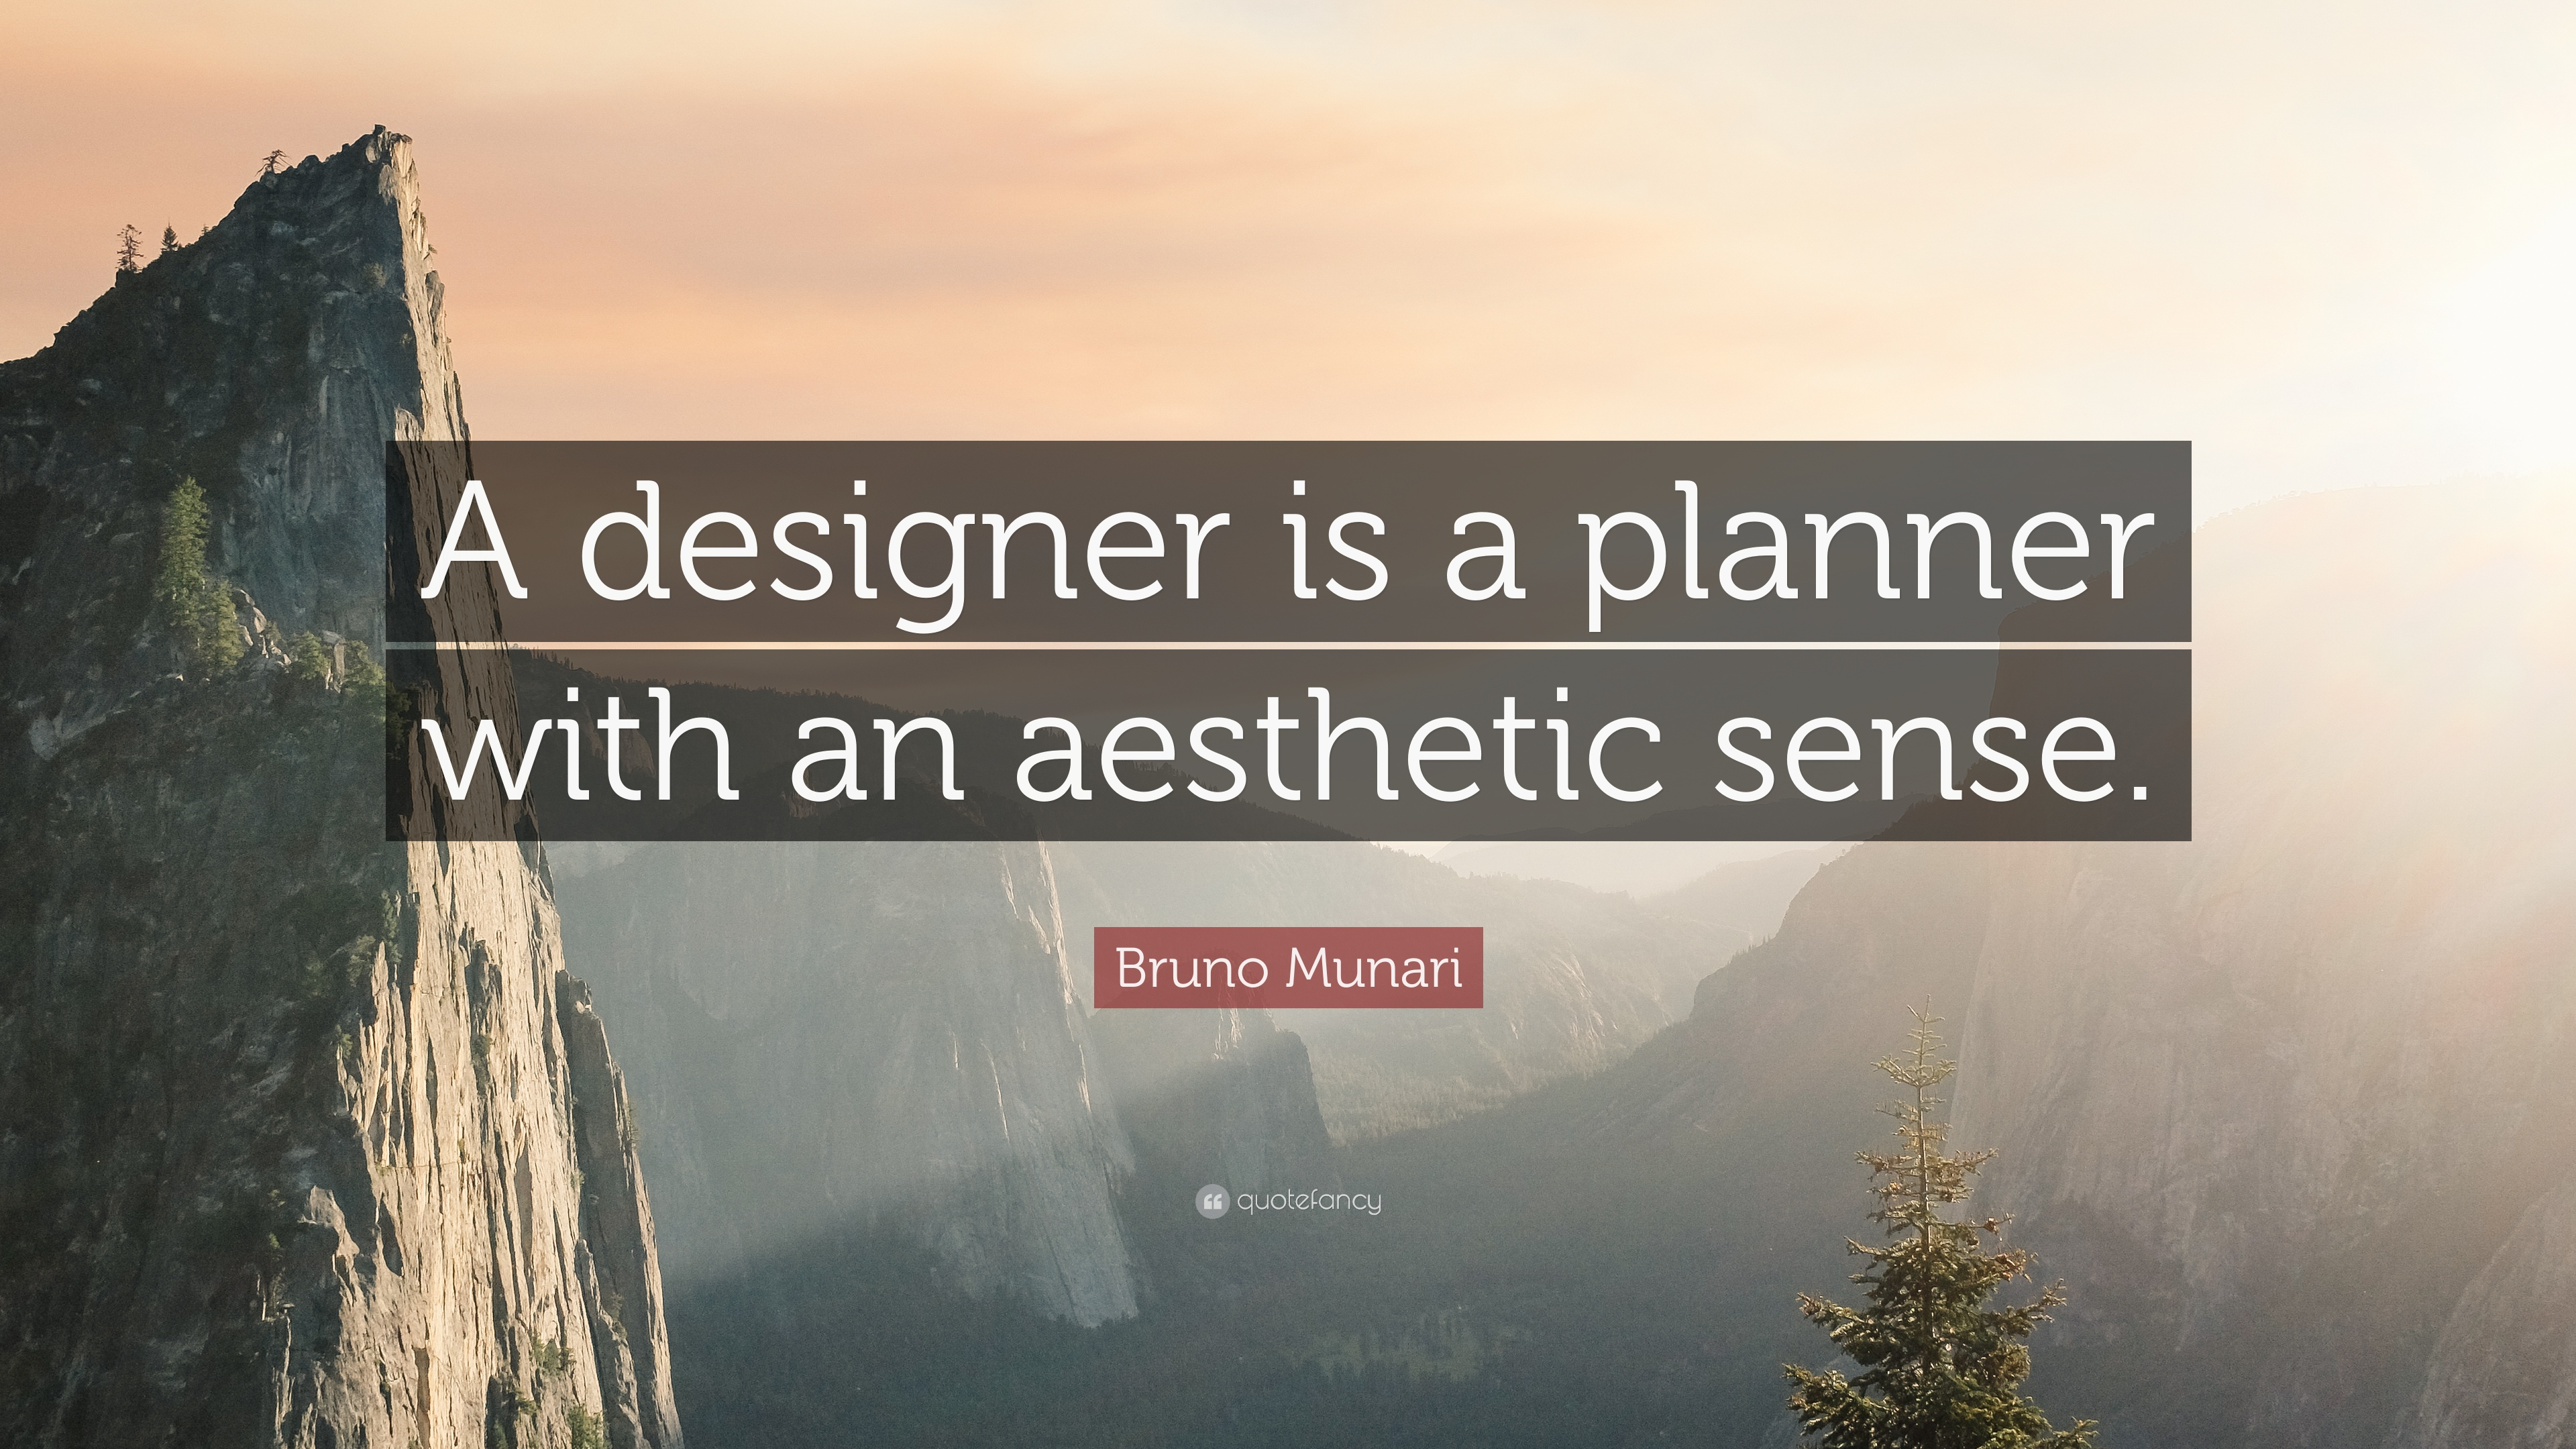 bruno munari quotes quotefancy